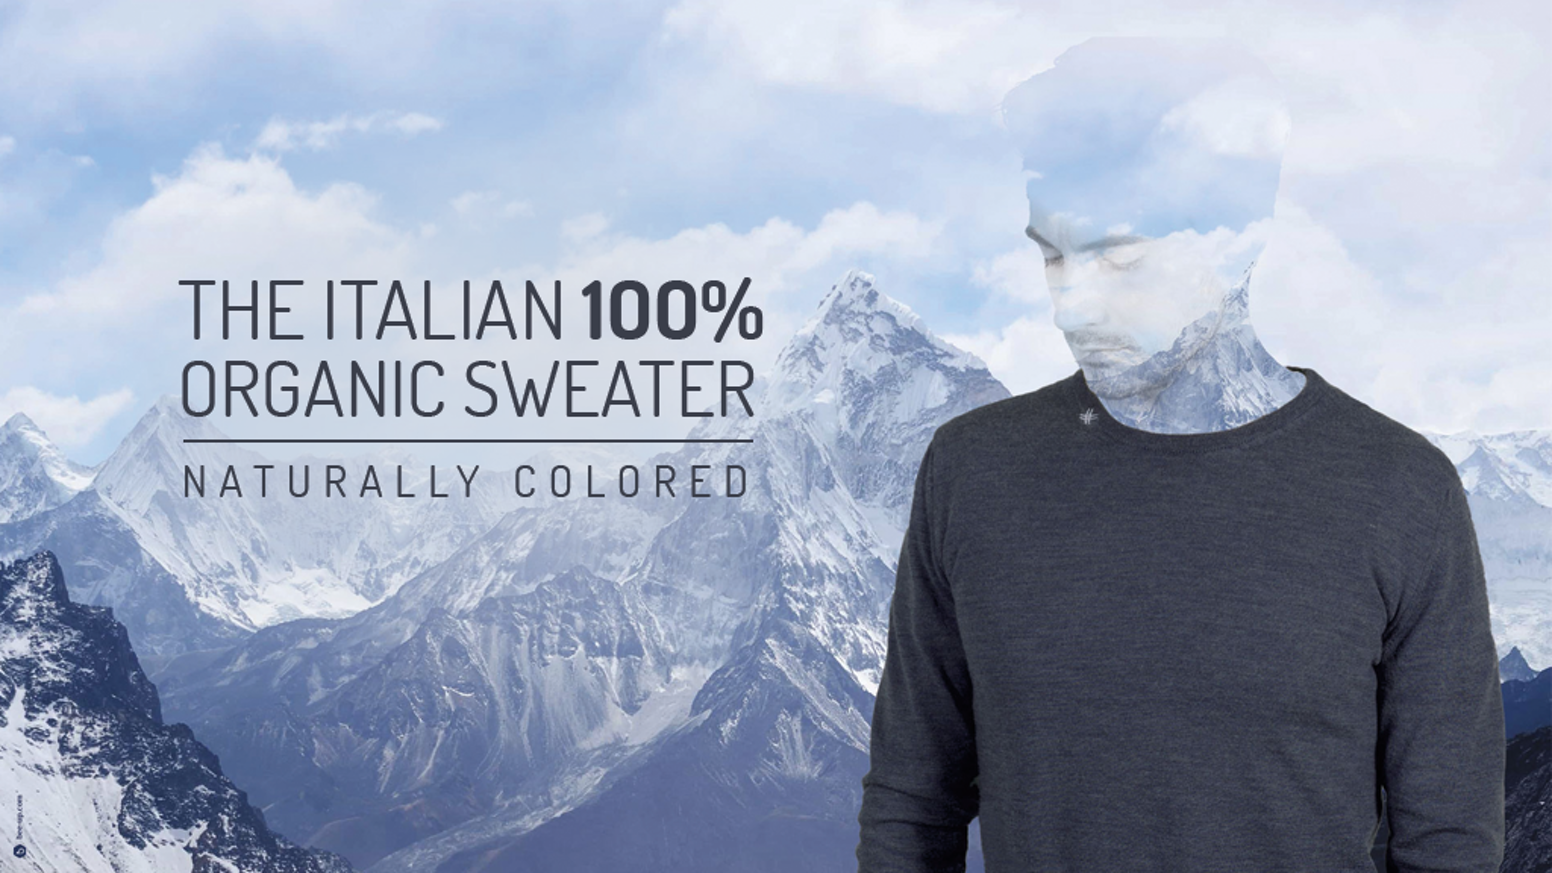 Fortunale comes directly from nature's heart; Fortunale is the Italian sweater, 100% natural, made of pure organic wool and dyes.